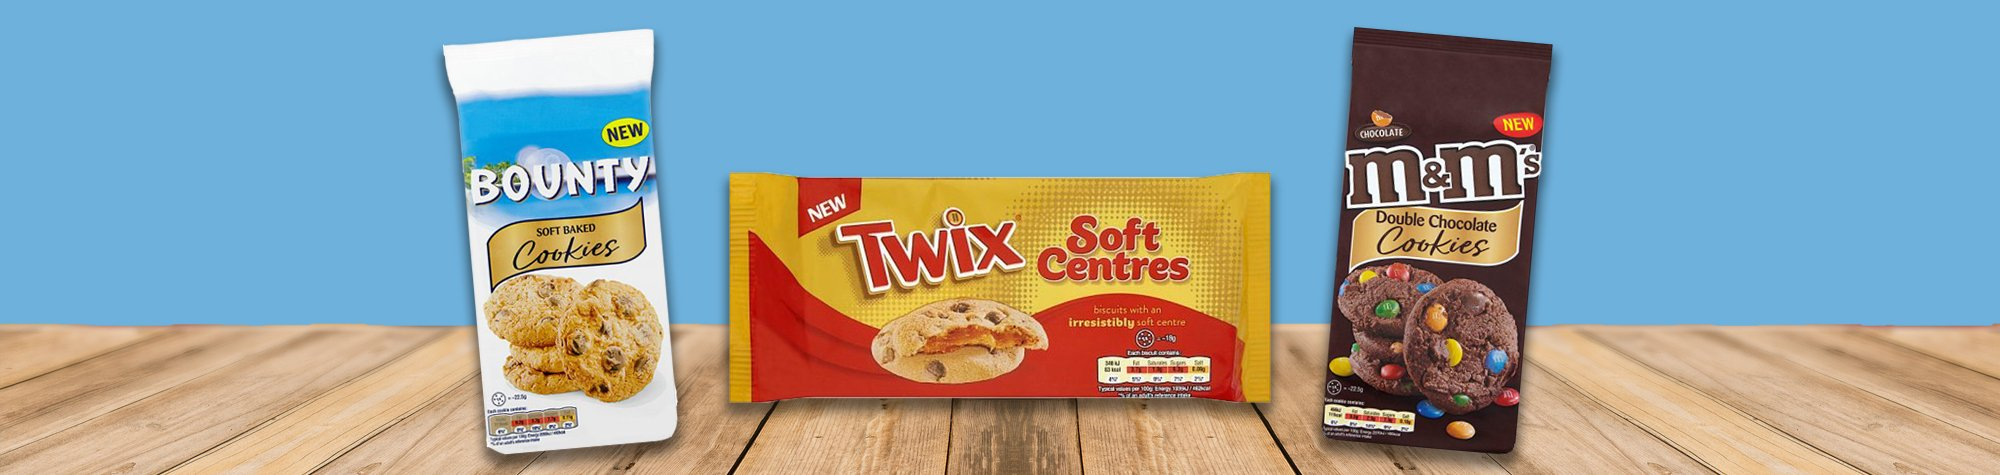 Miller Distributors Ltd appointed local distributor for Bounty cookies, M&M's cookies & Twix soft centres